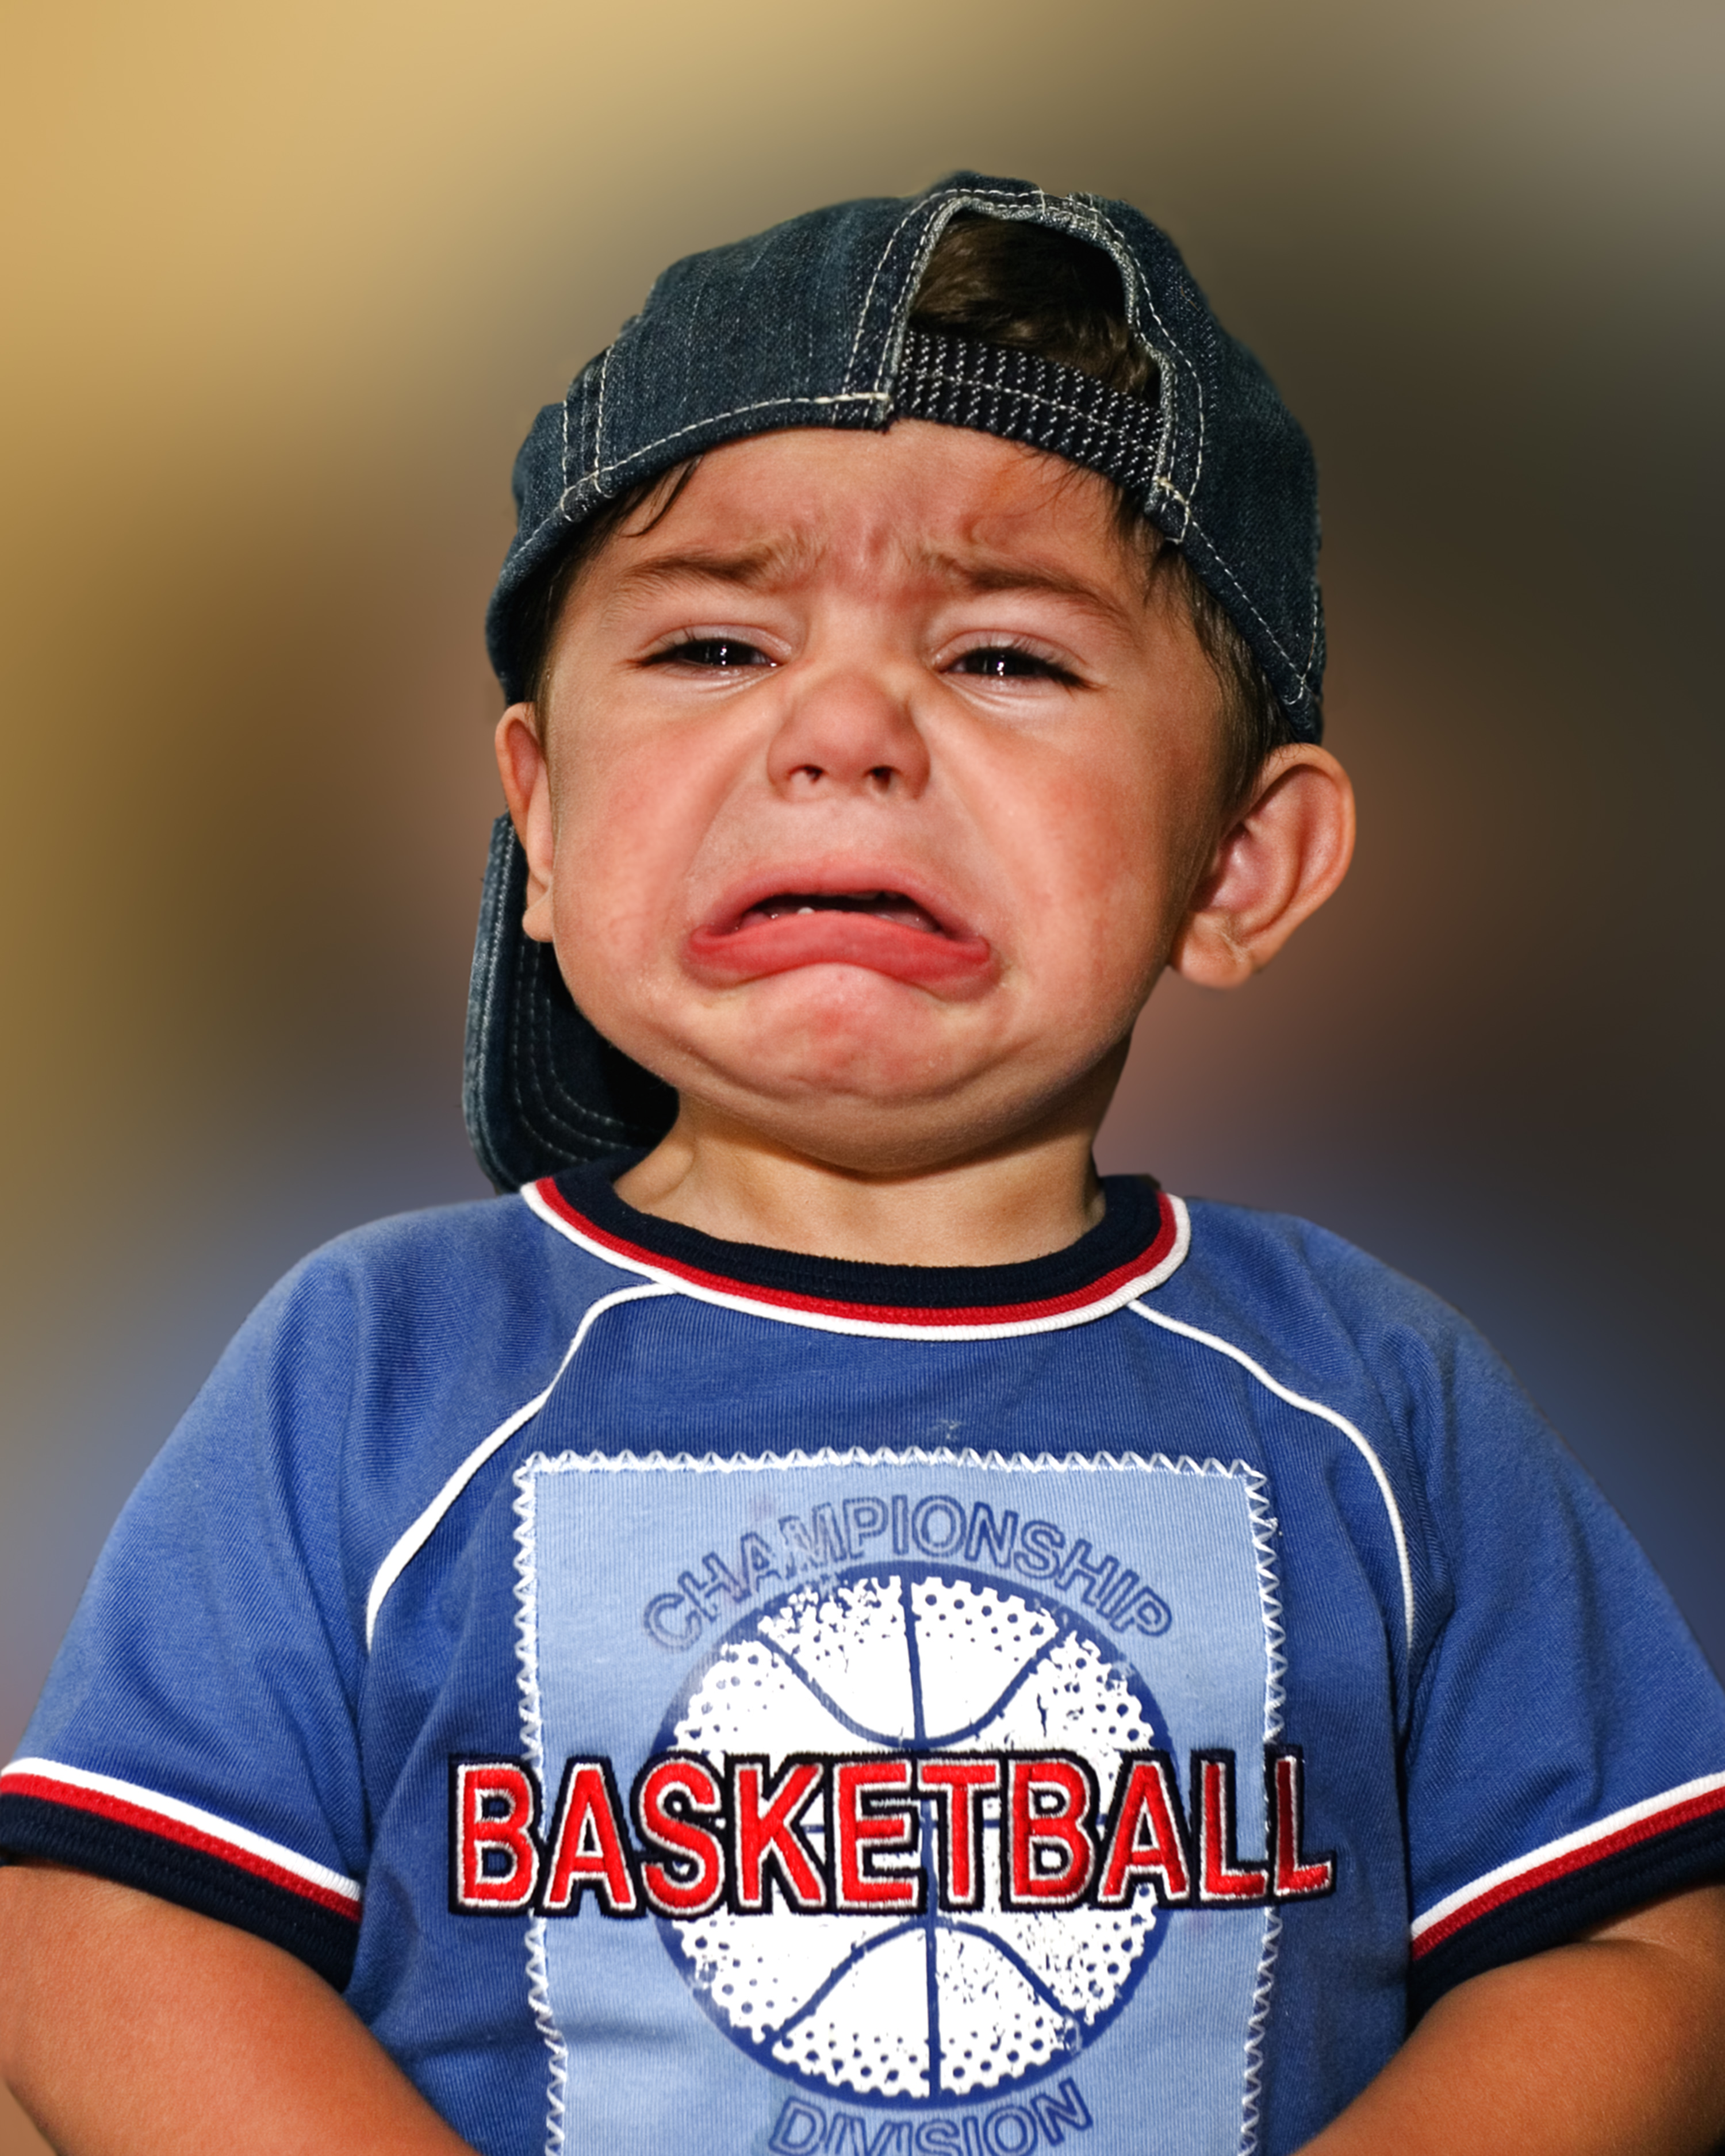 I want to play ball crying